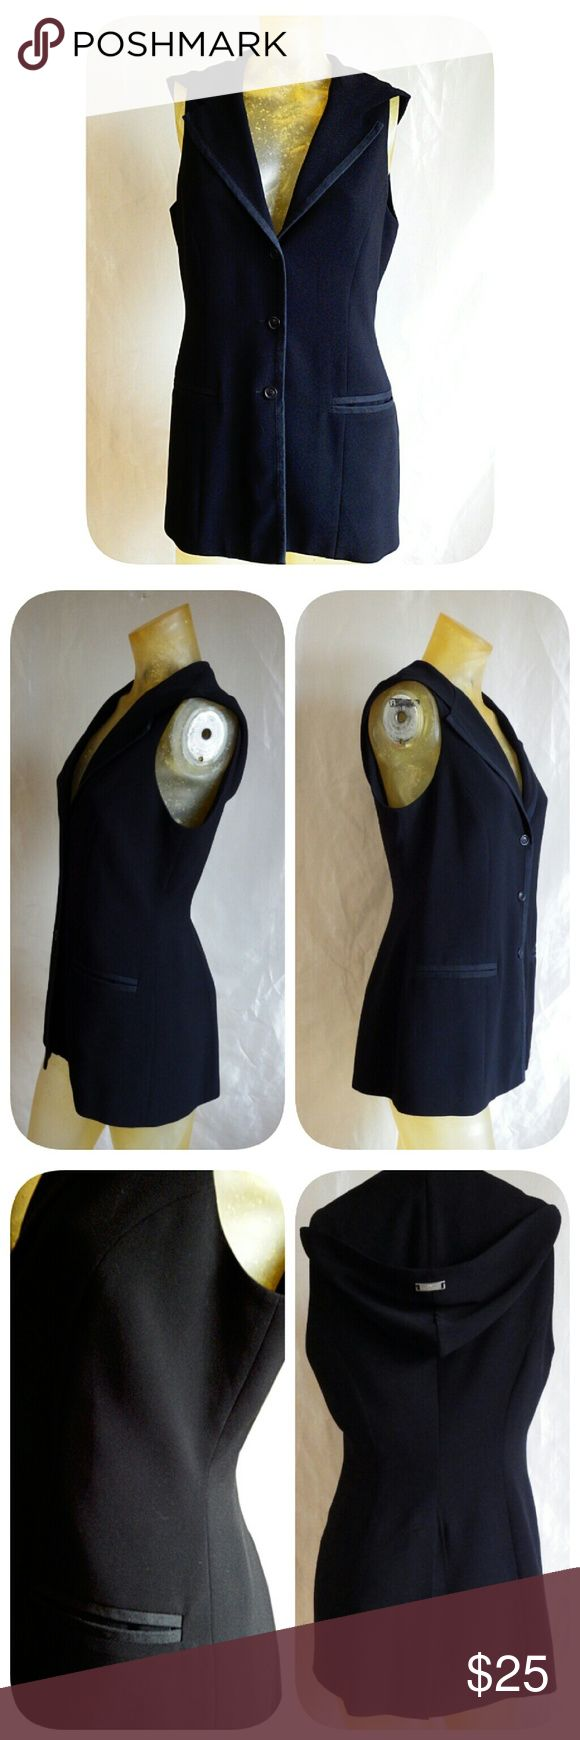 """Ivoire De Laurence - Black Hooded Vest Chic, button front vest with hood, notched collar, front pockets, tuxedo piping, back vent split, princess seams for a tailored fit. Lined in black satin. 29"""" from nape of neck to hem. 100% polyester.  Made in Paris. Size EU 44 but runs small.  Fits like a size 8 Ivoire De Laurence Jackets & Coats Vests"""